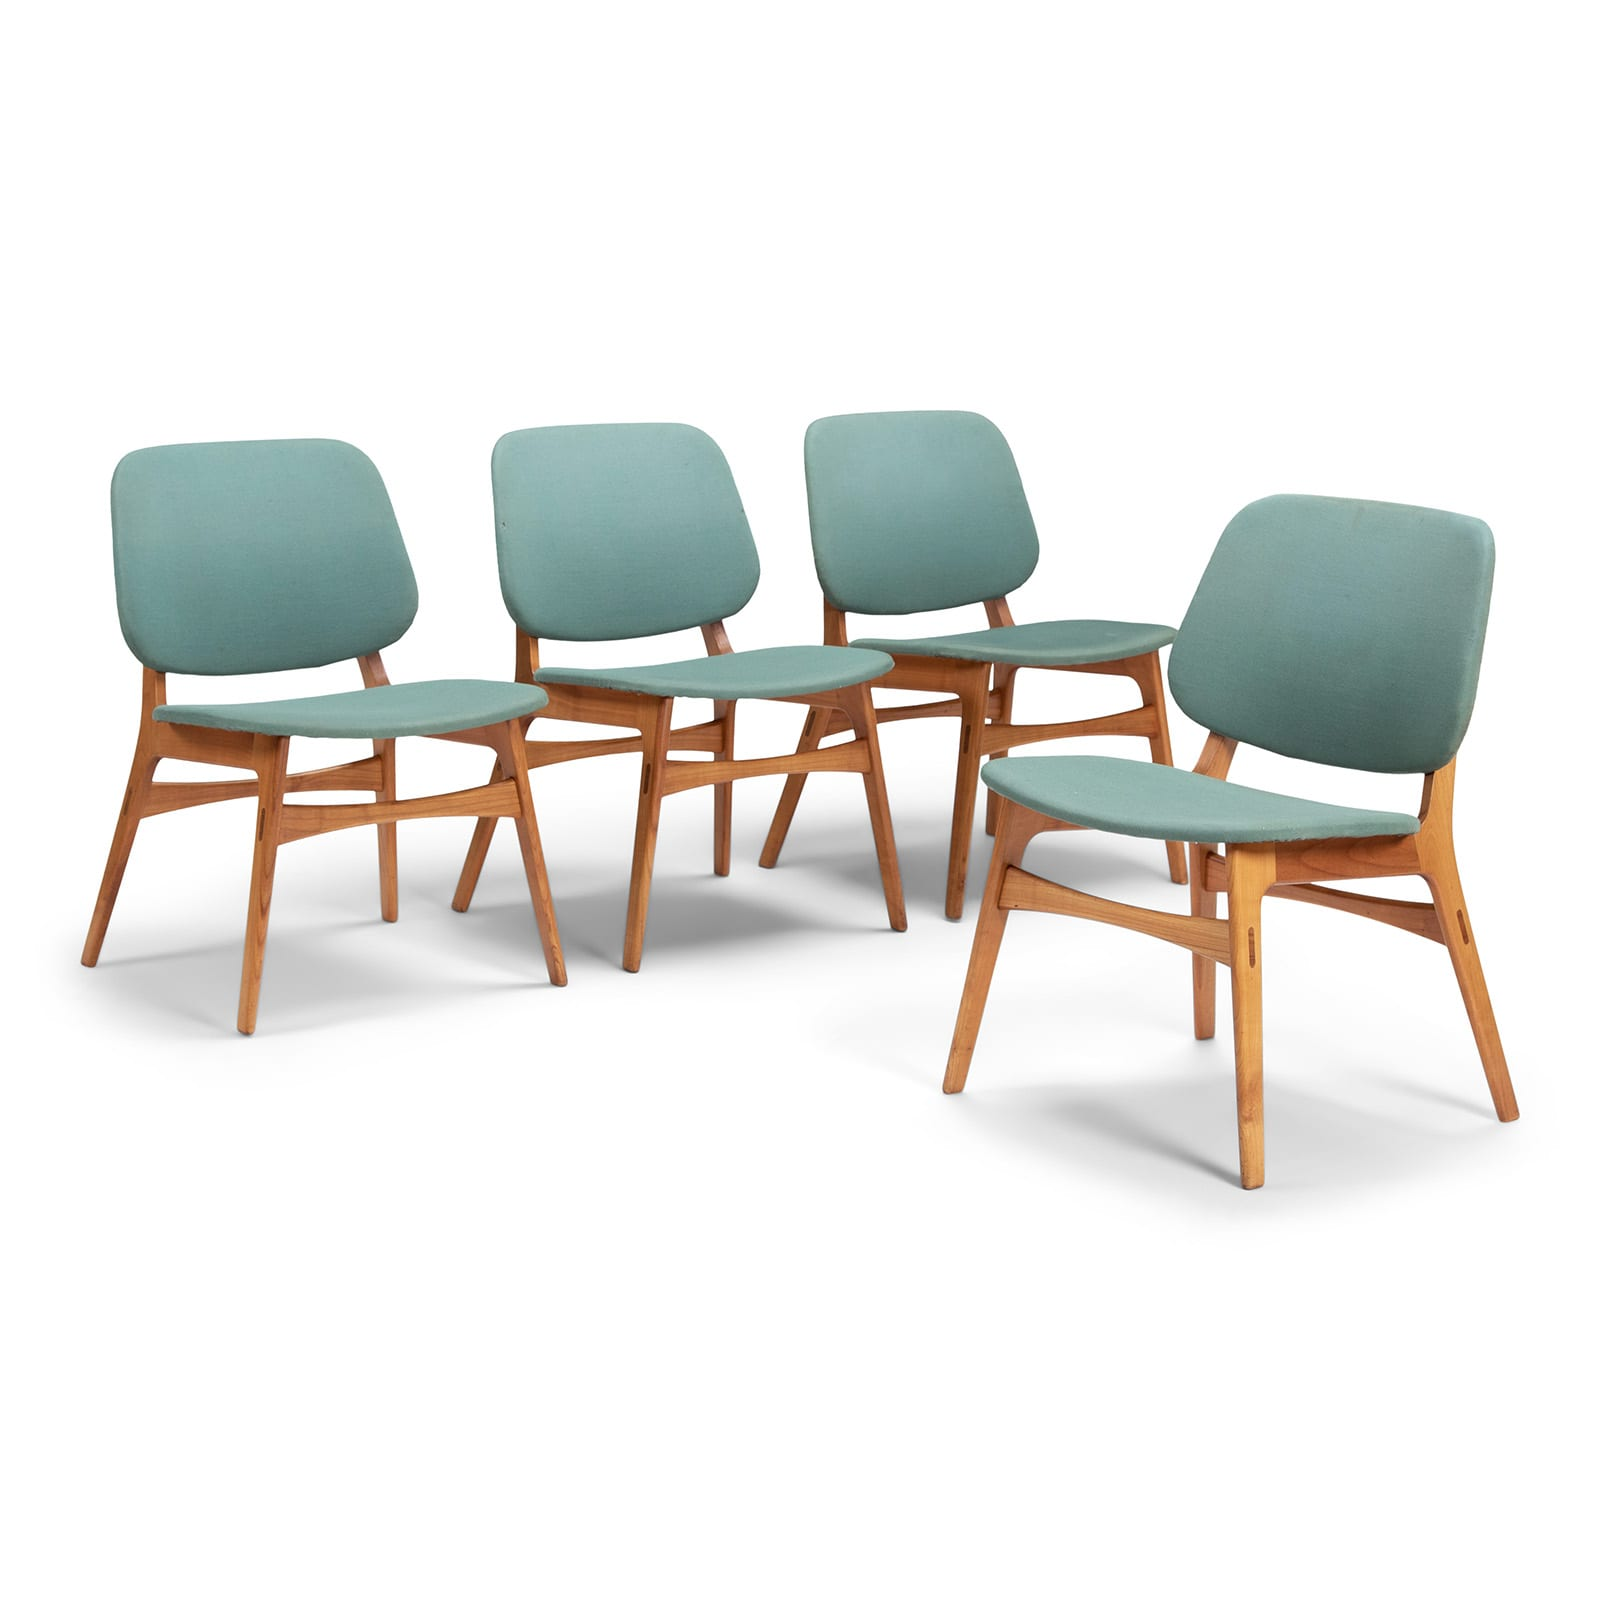 A set of four chairs